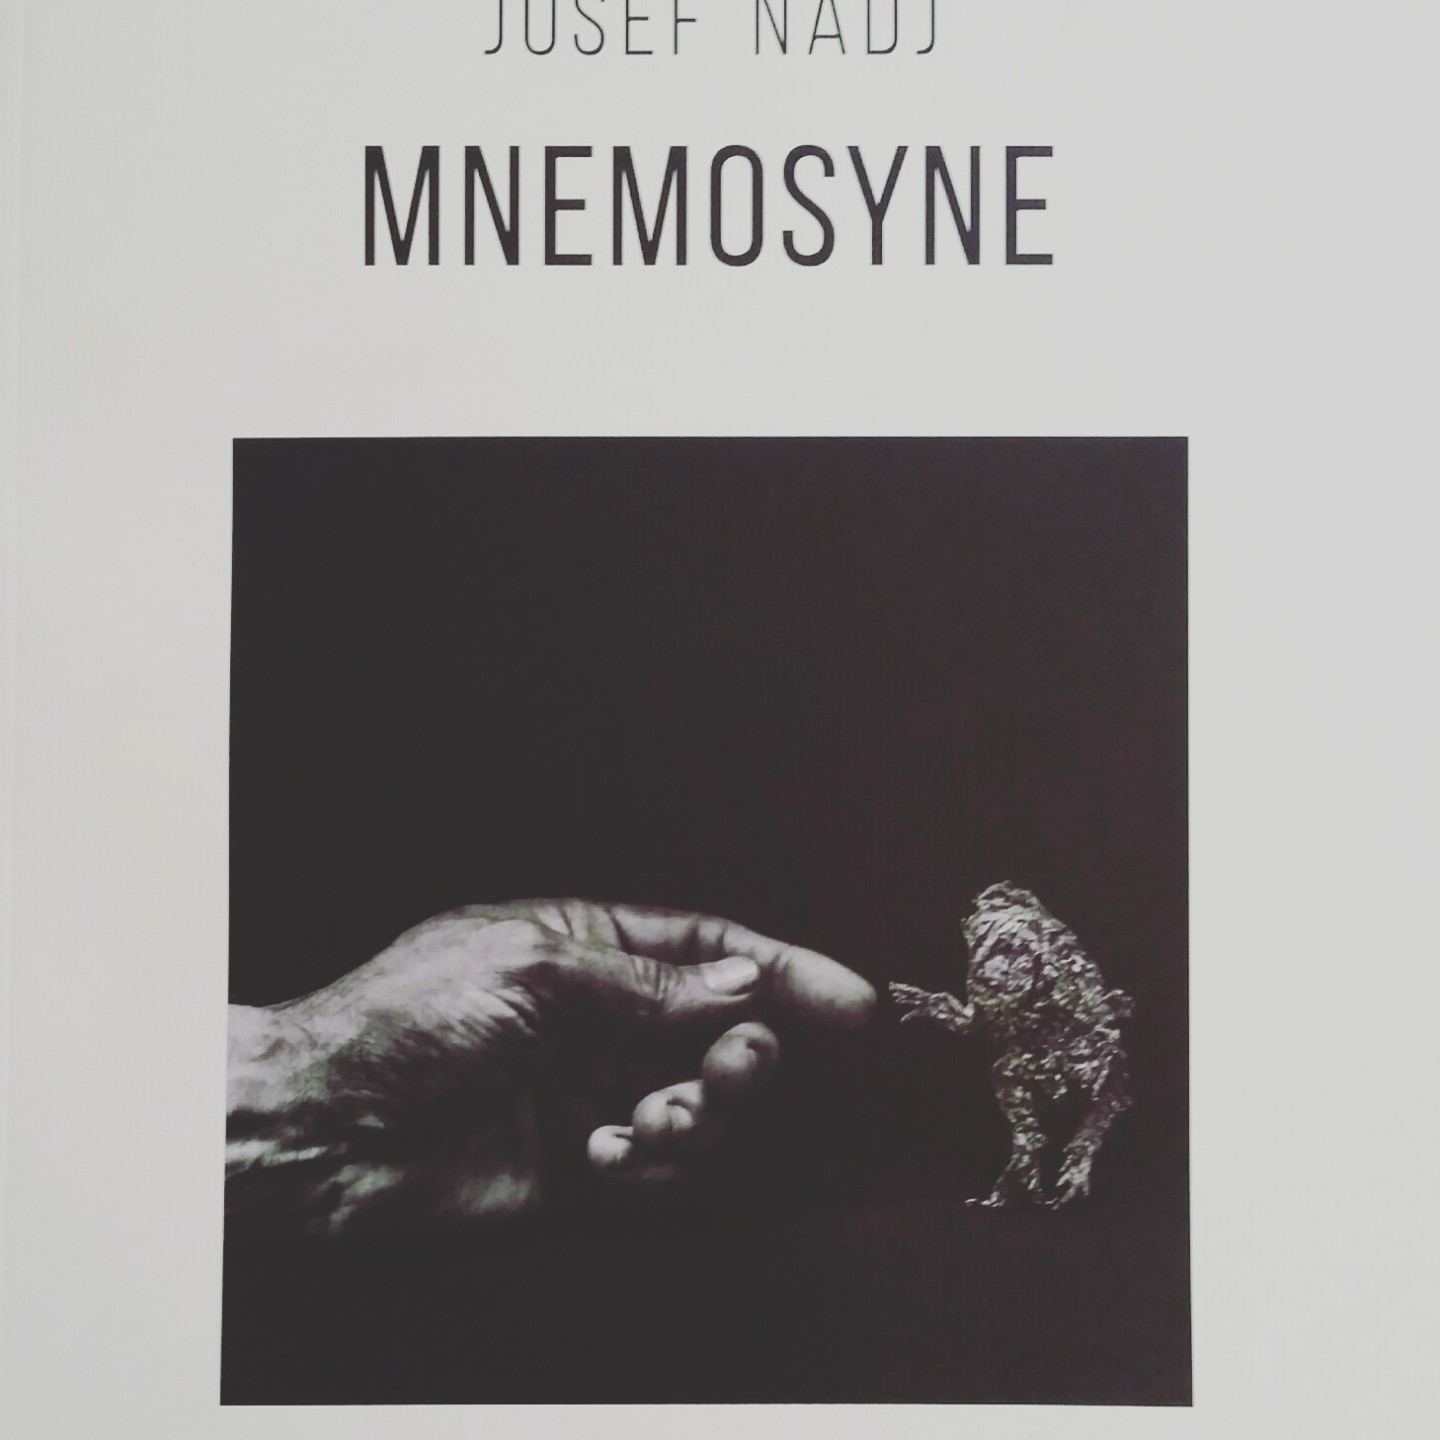 Mnémosyne - Josef Nadj catalogue